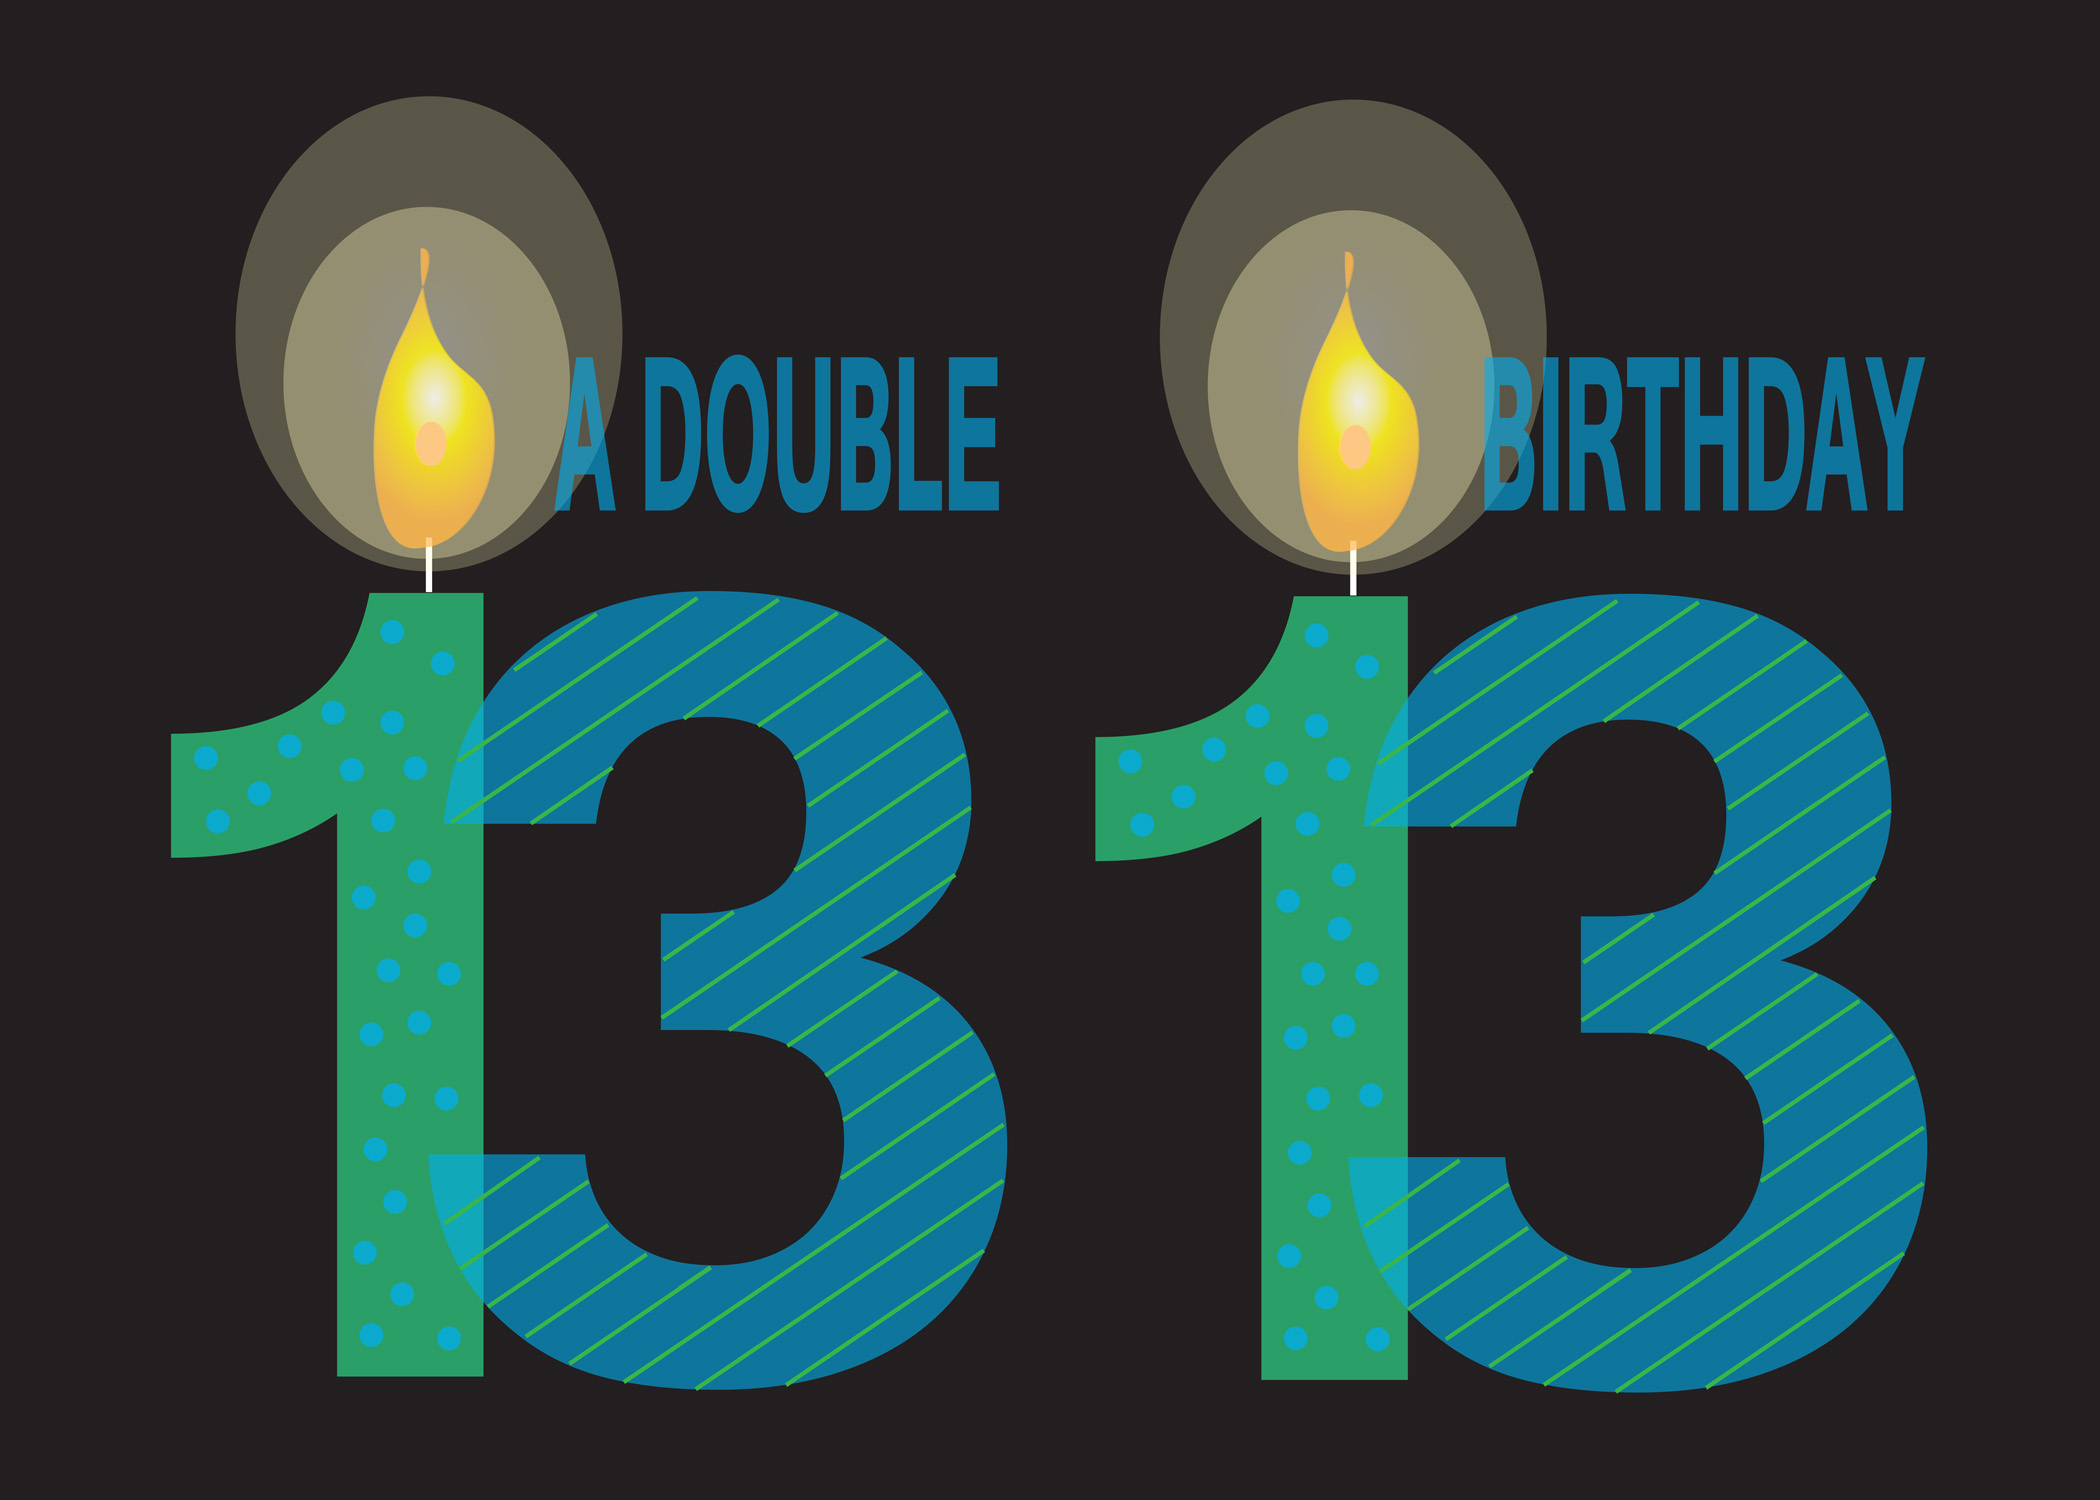 A Double Birthday for 13 years old - twins